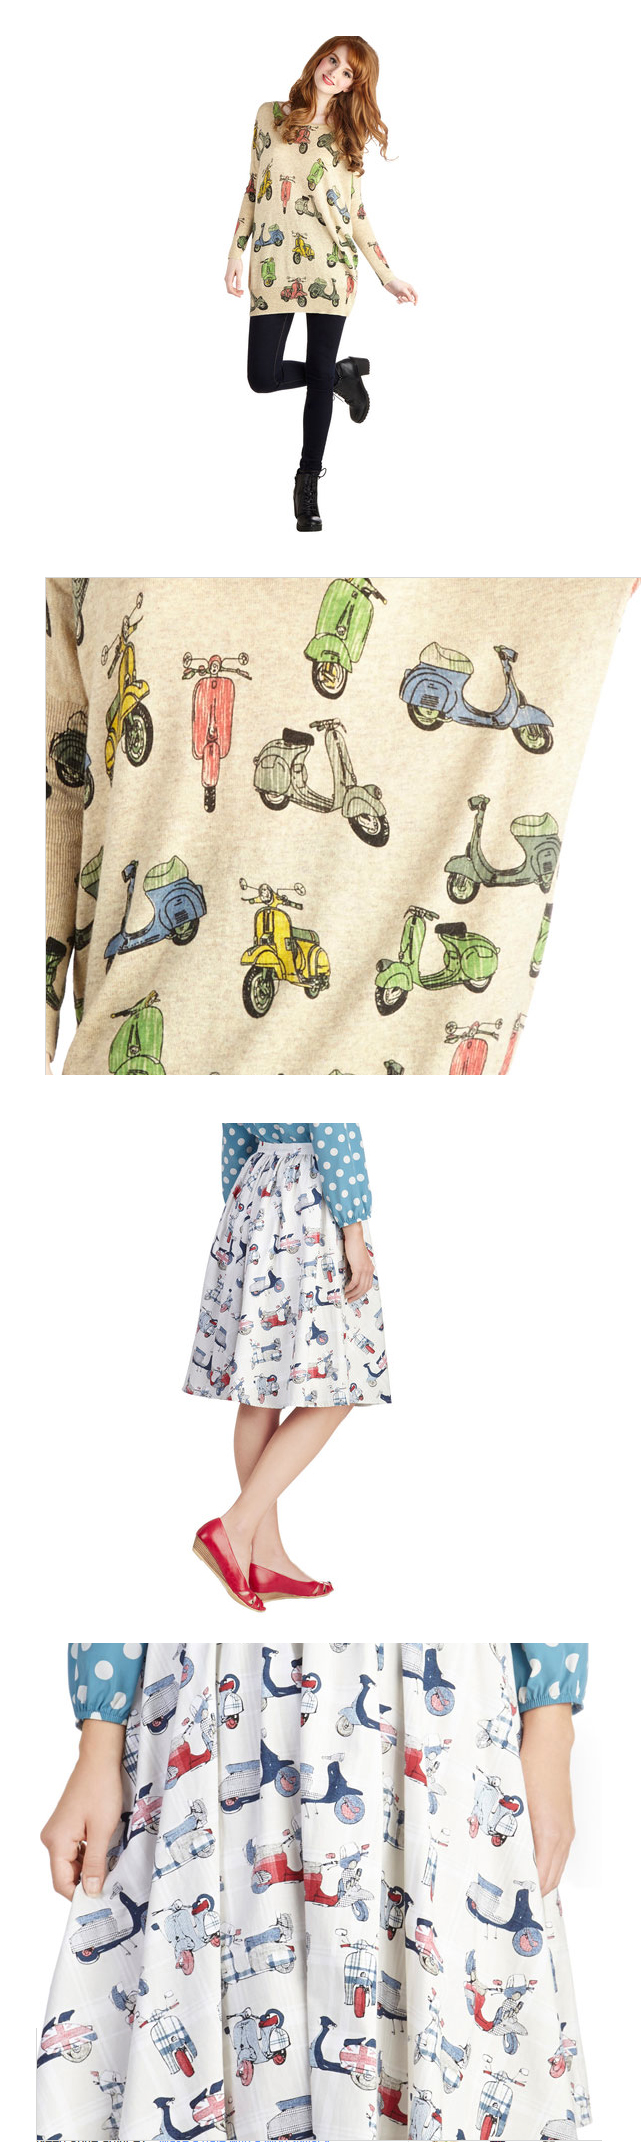 Scooter Vespa Clothing Skirt Shirt Sweatshirt Modcloth